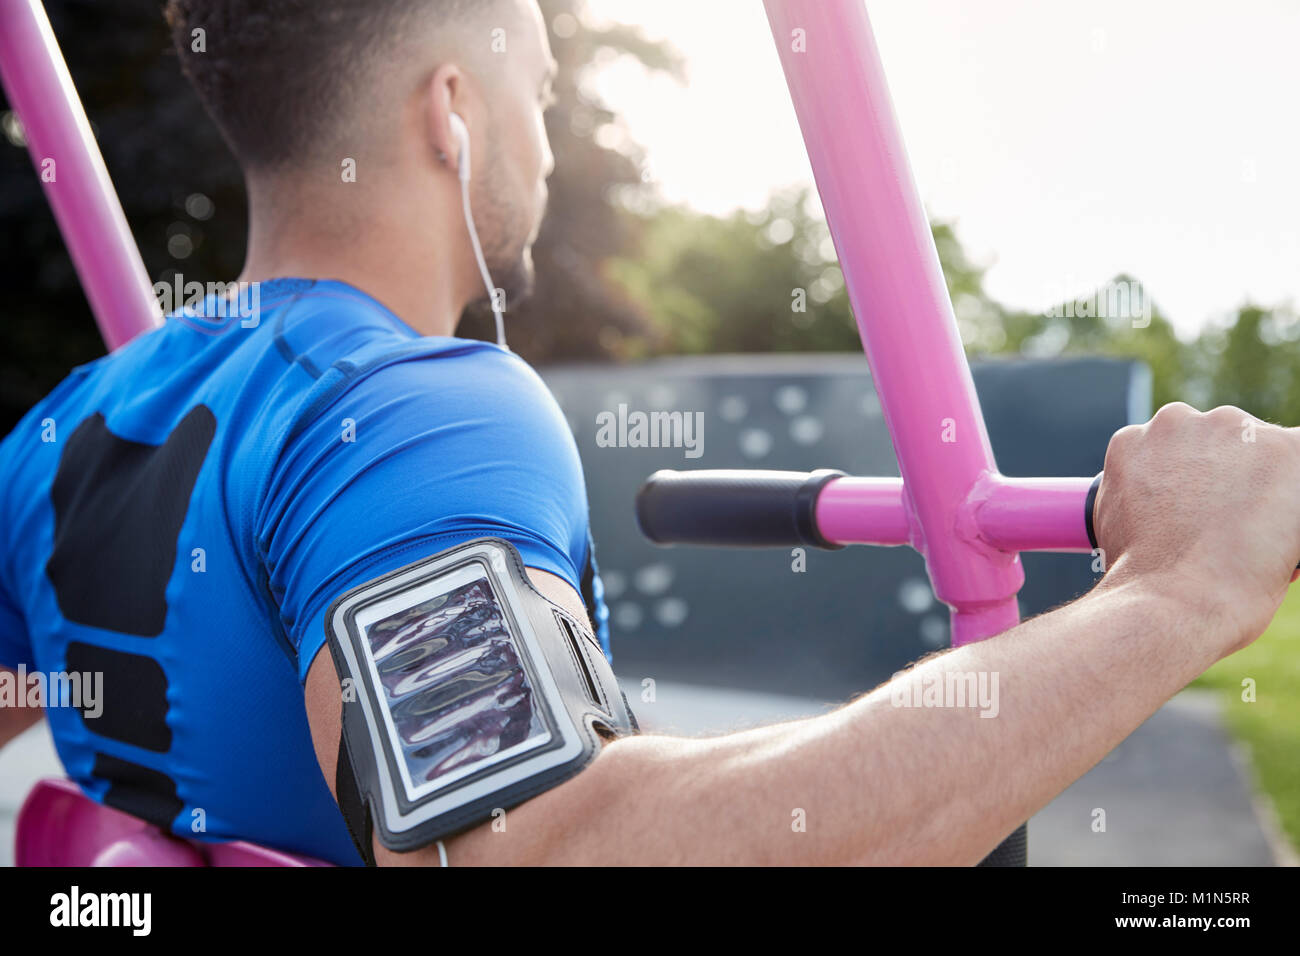 Young male athlete using outdoor gym, over shoulder view - Stock Image